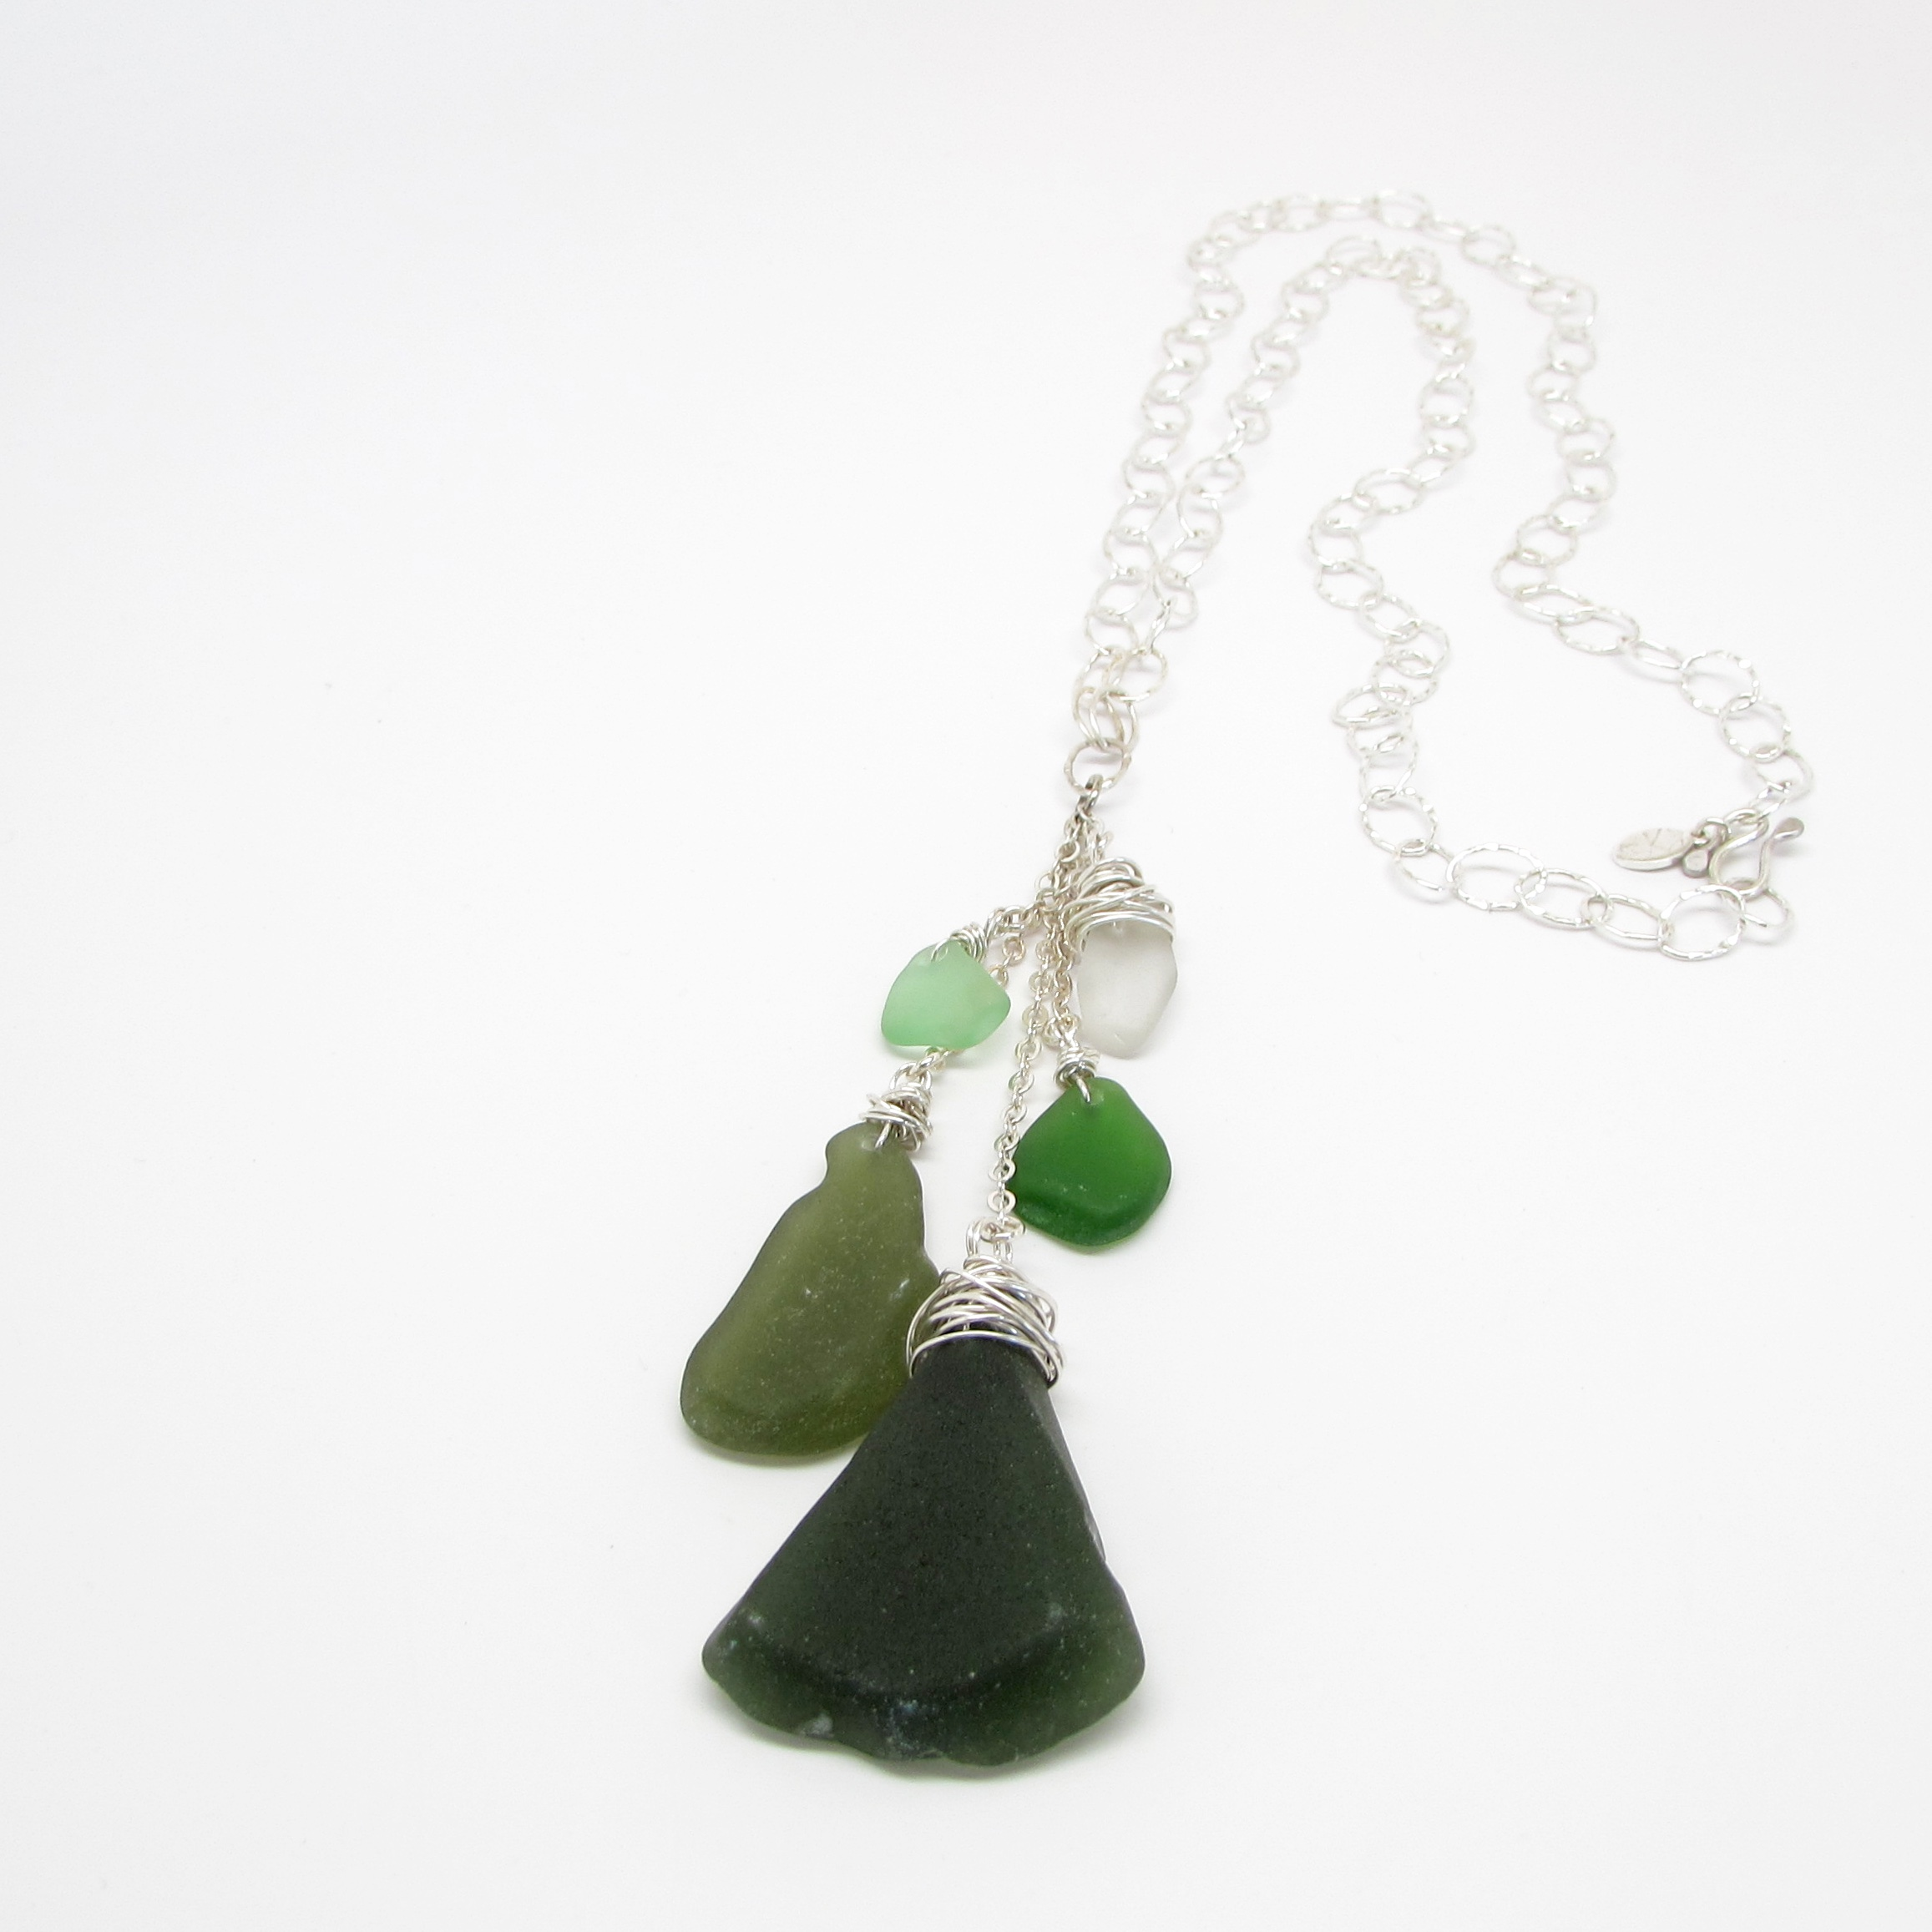 Sea Glass Waterfall Necklace in Nature Green